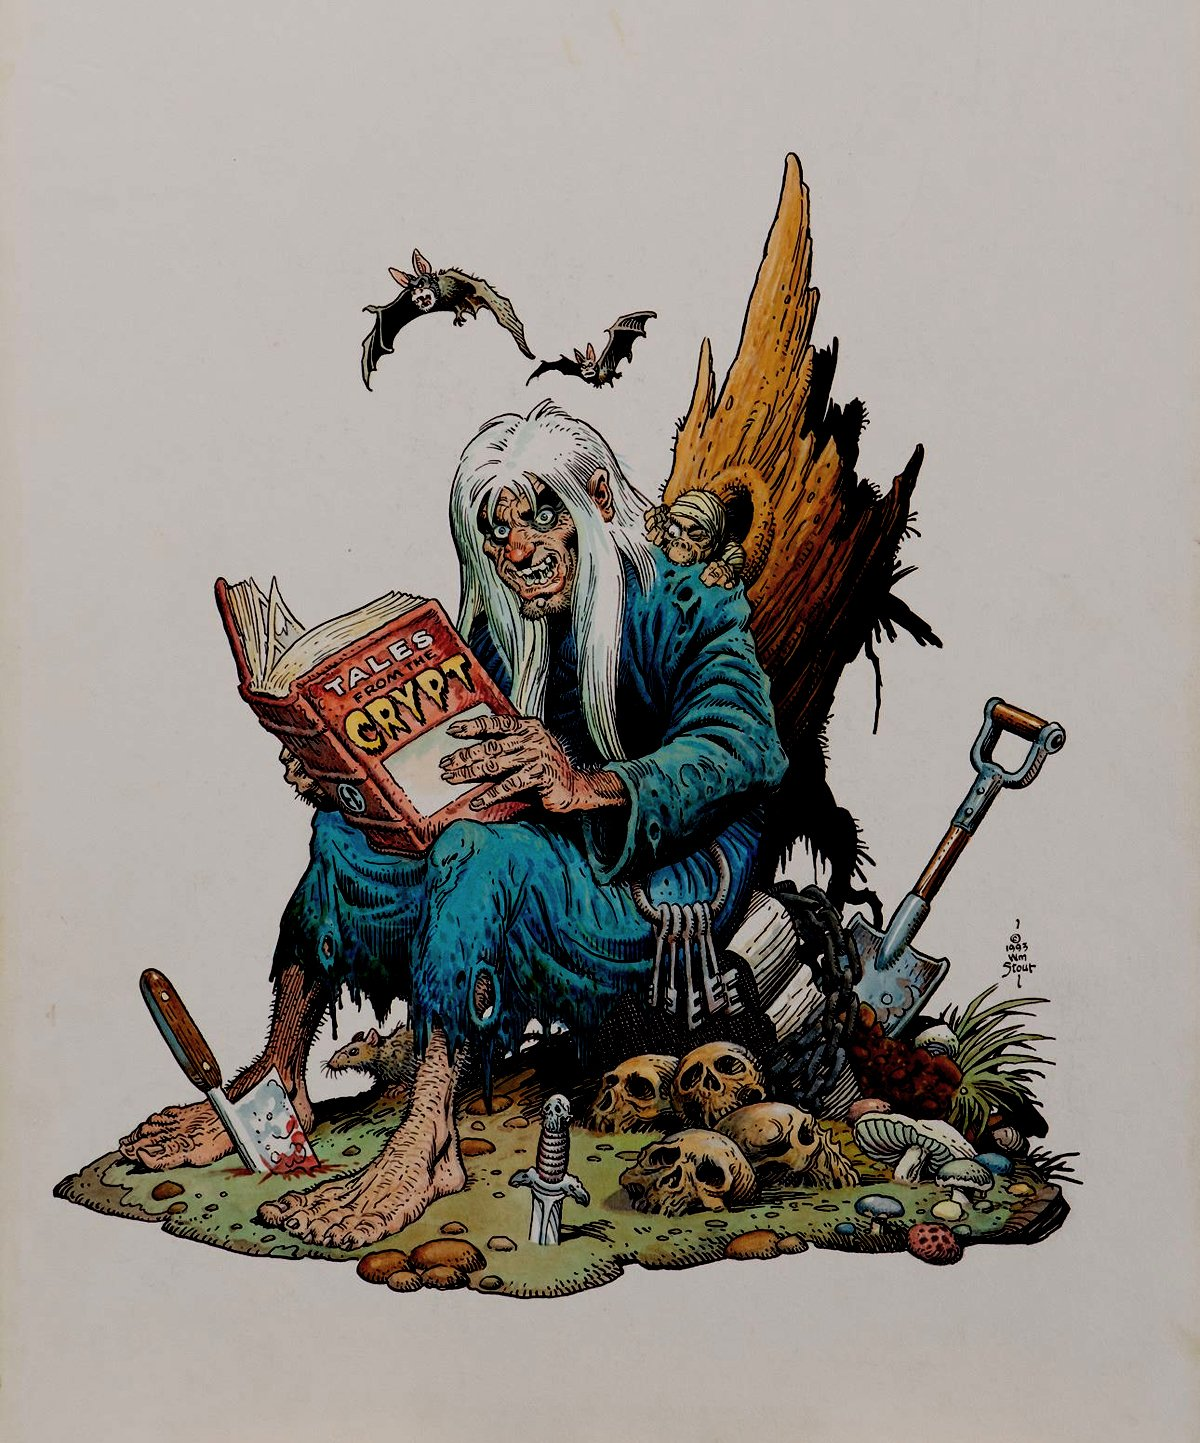 'The Crypt Keeper' Pinup Used For Published Porcelain Statue (Large Art) 1993